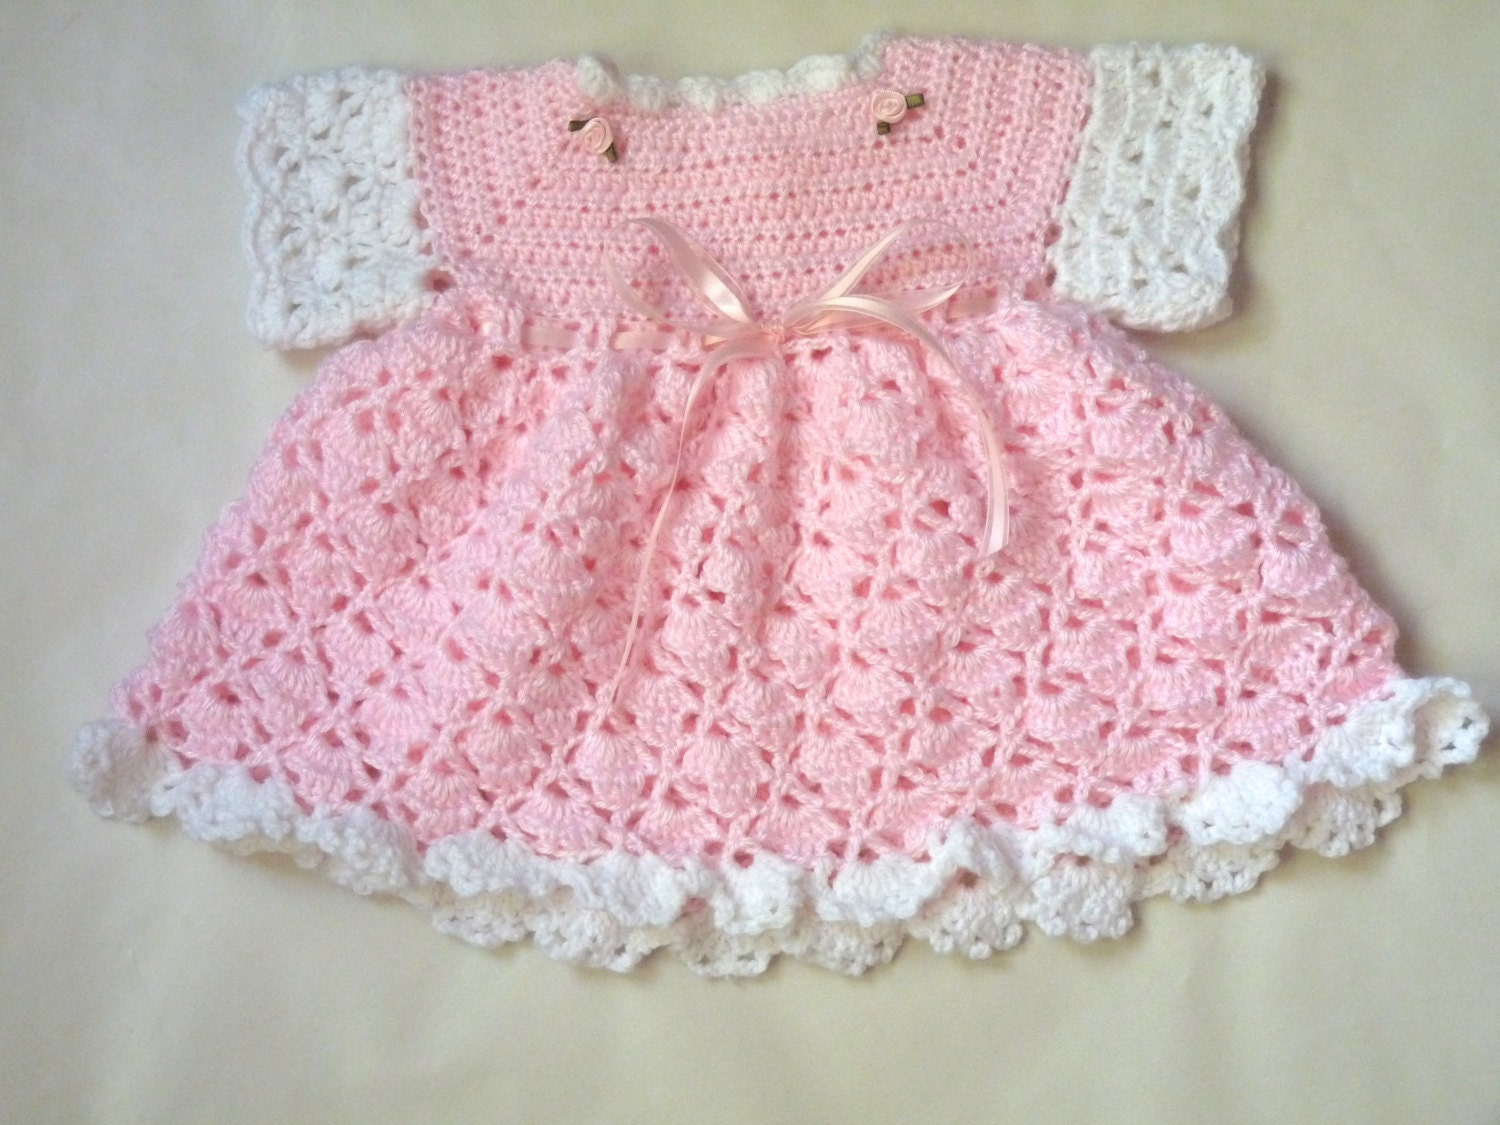 Awesome Pictures Of Crochet Baby Clothes Cutest Baby Clothing And